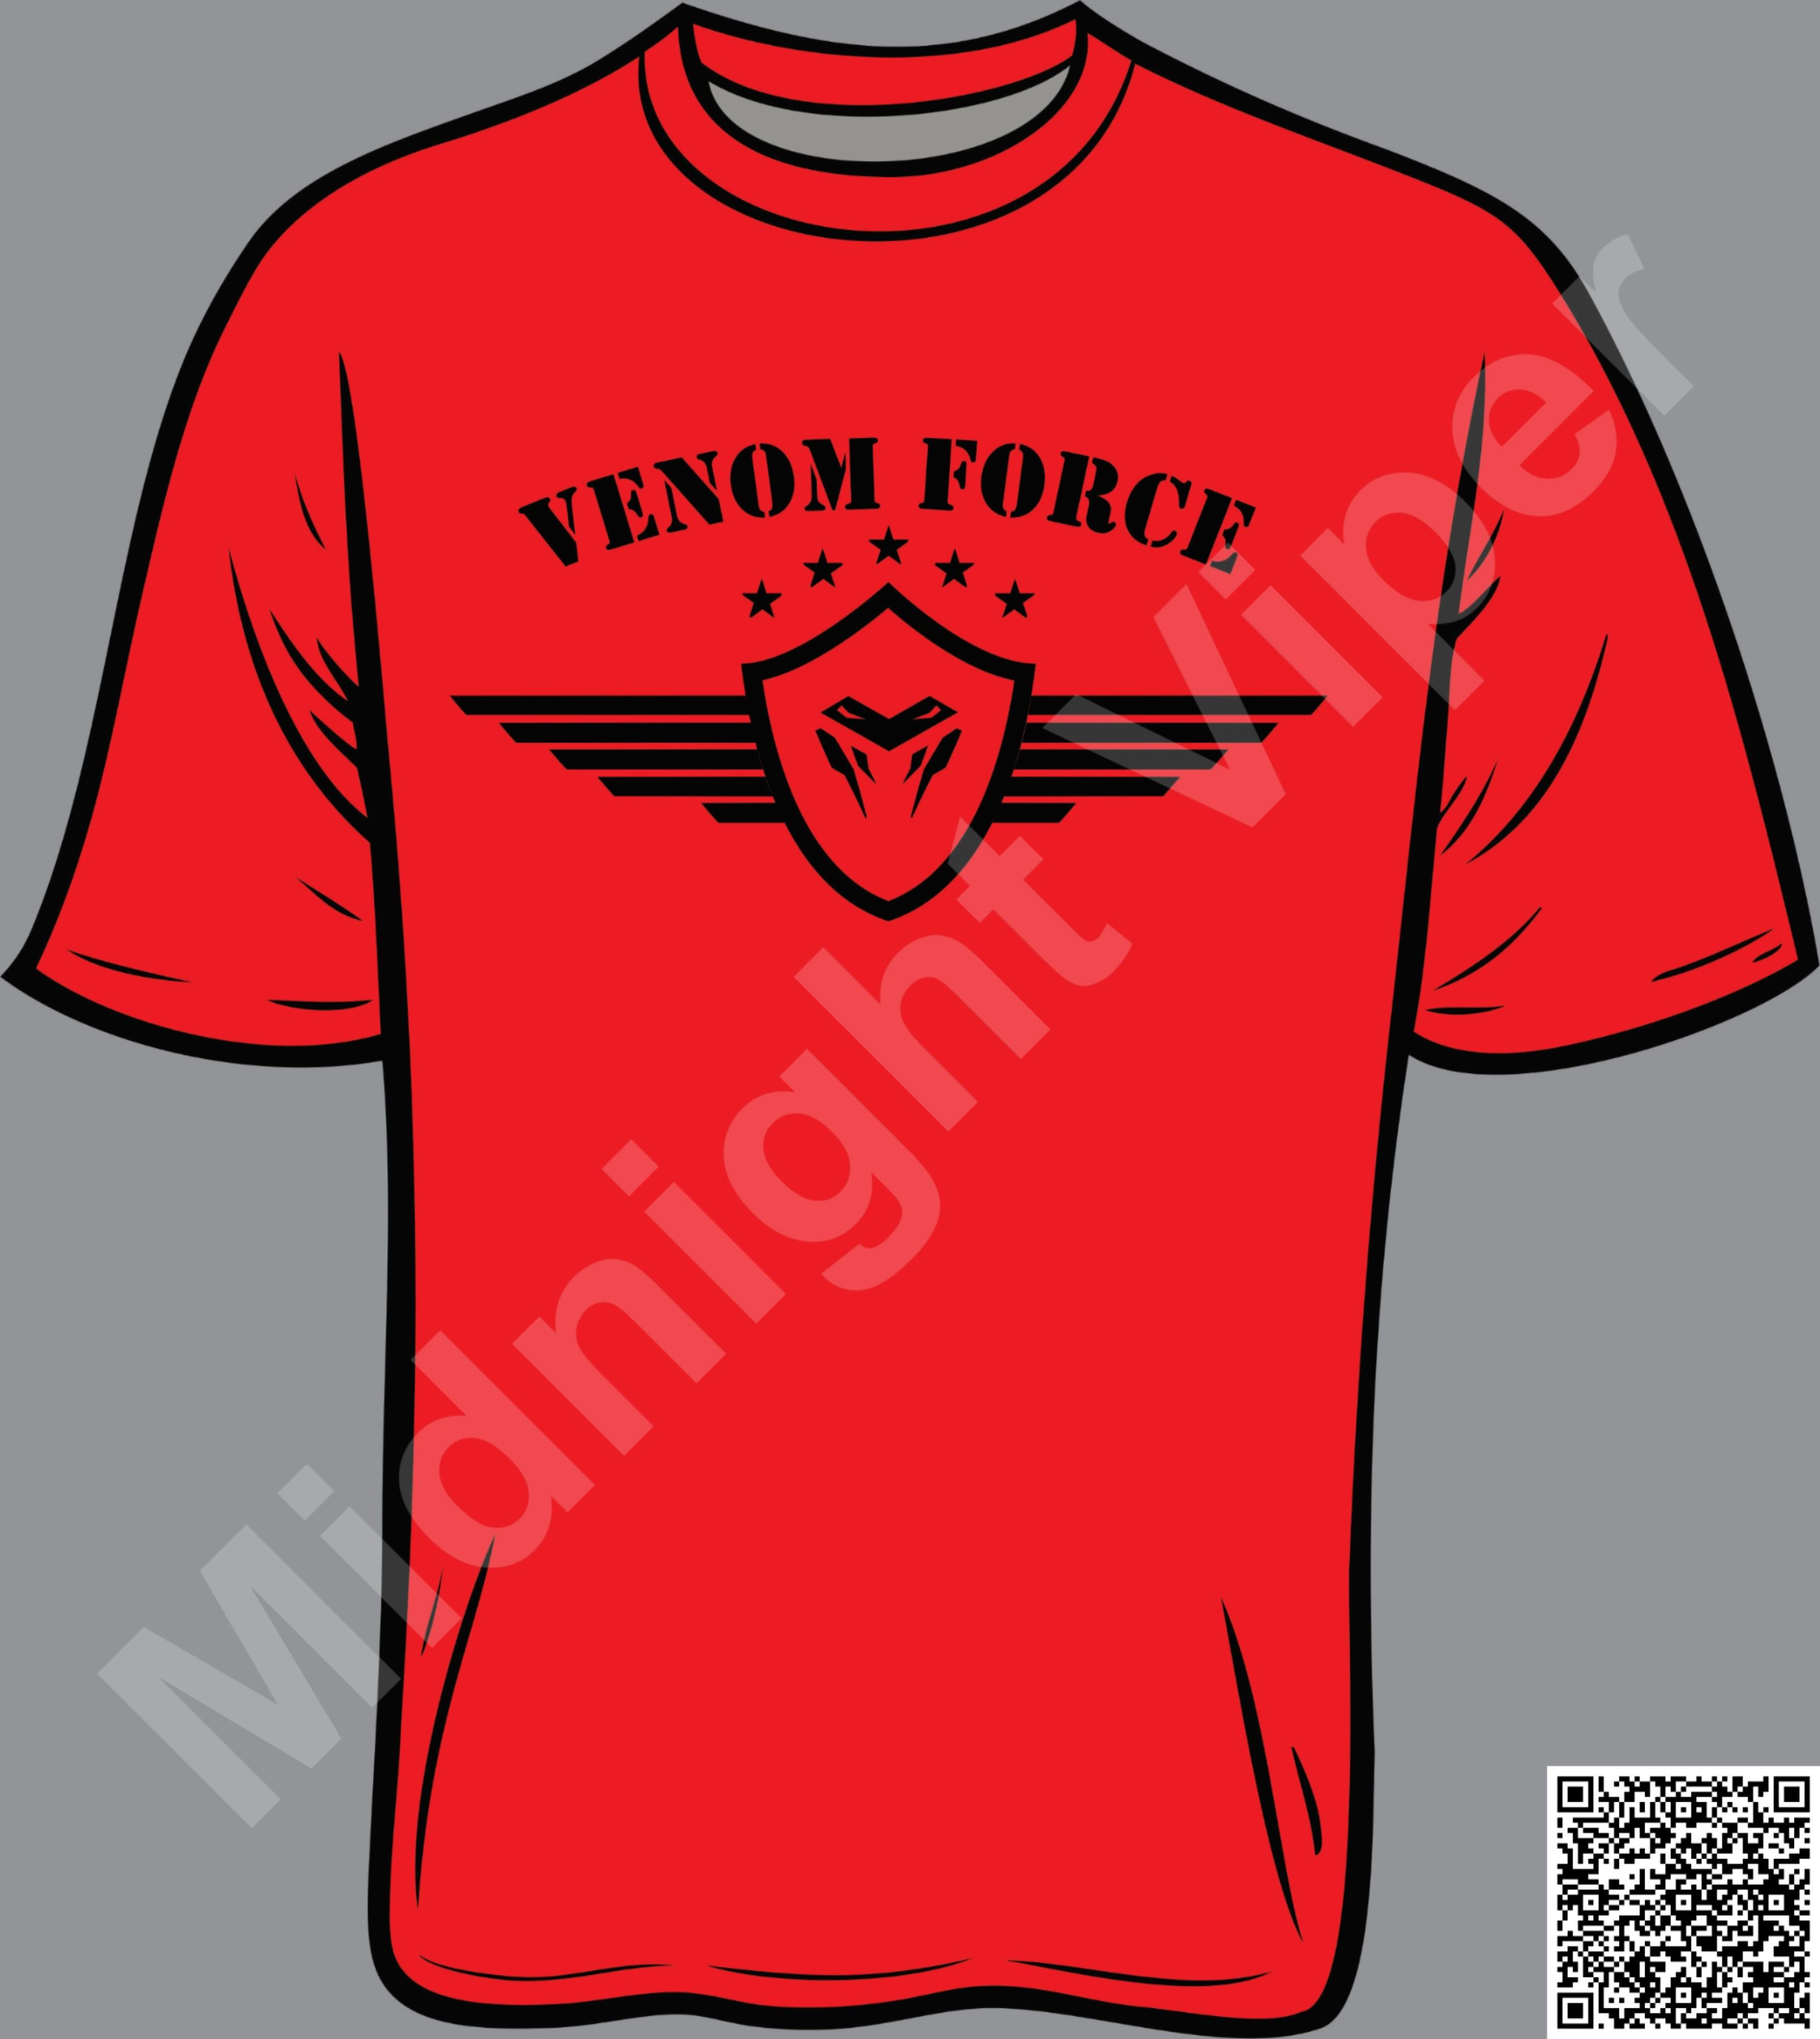 Venom Force T Shirt Can Be Any Color T Shirt Custom Clothes Shirt Designs